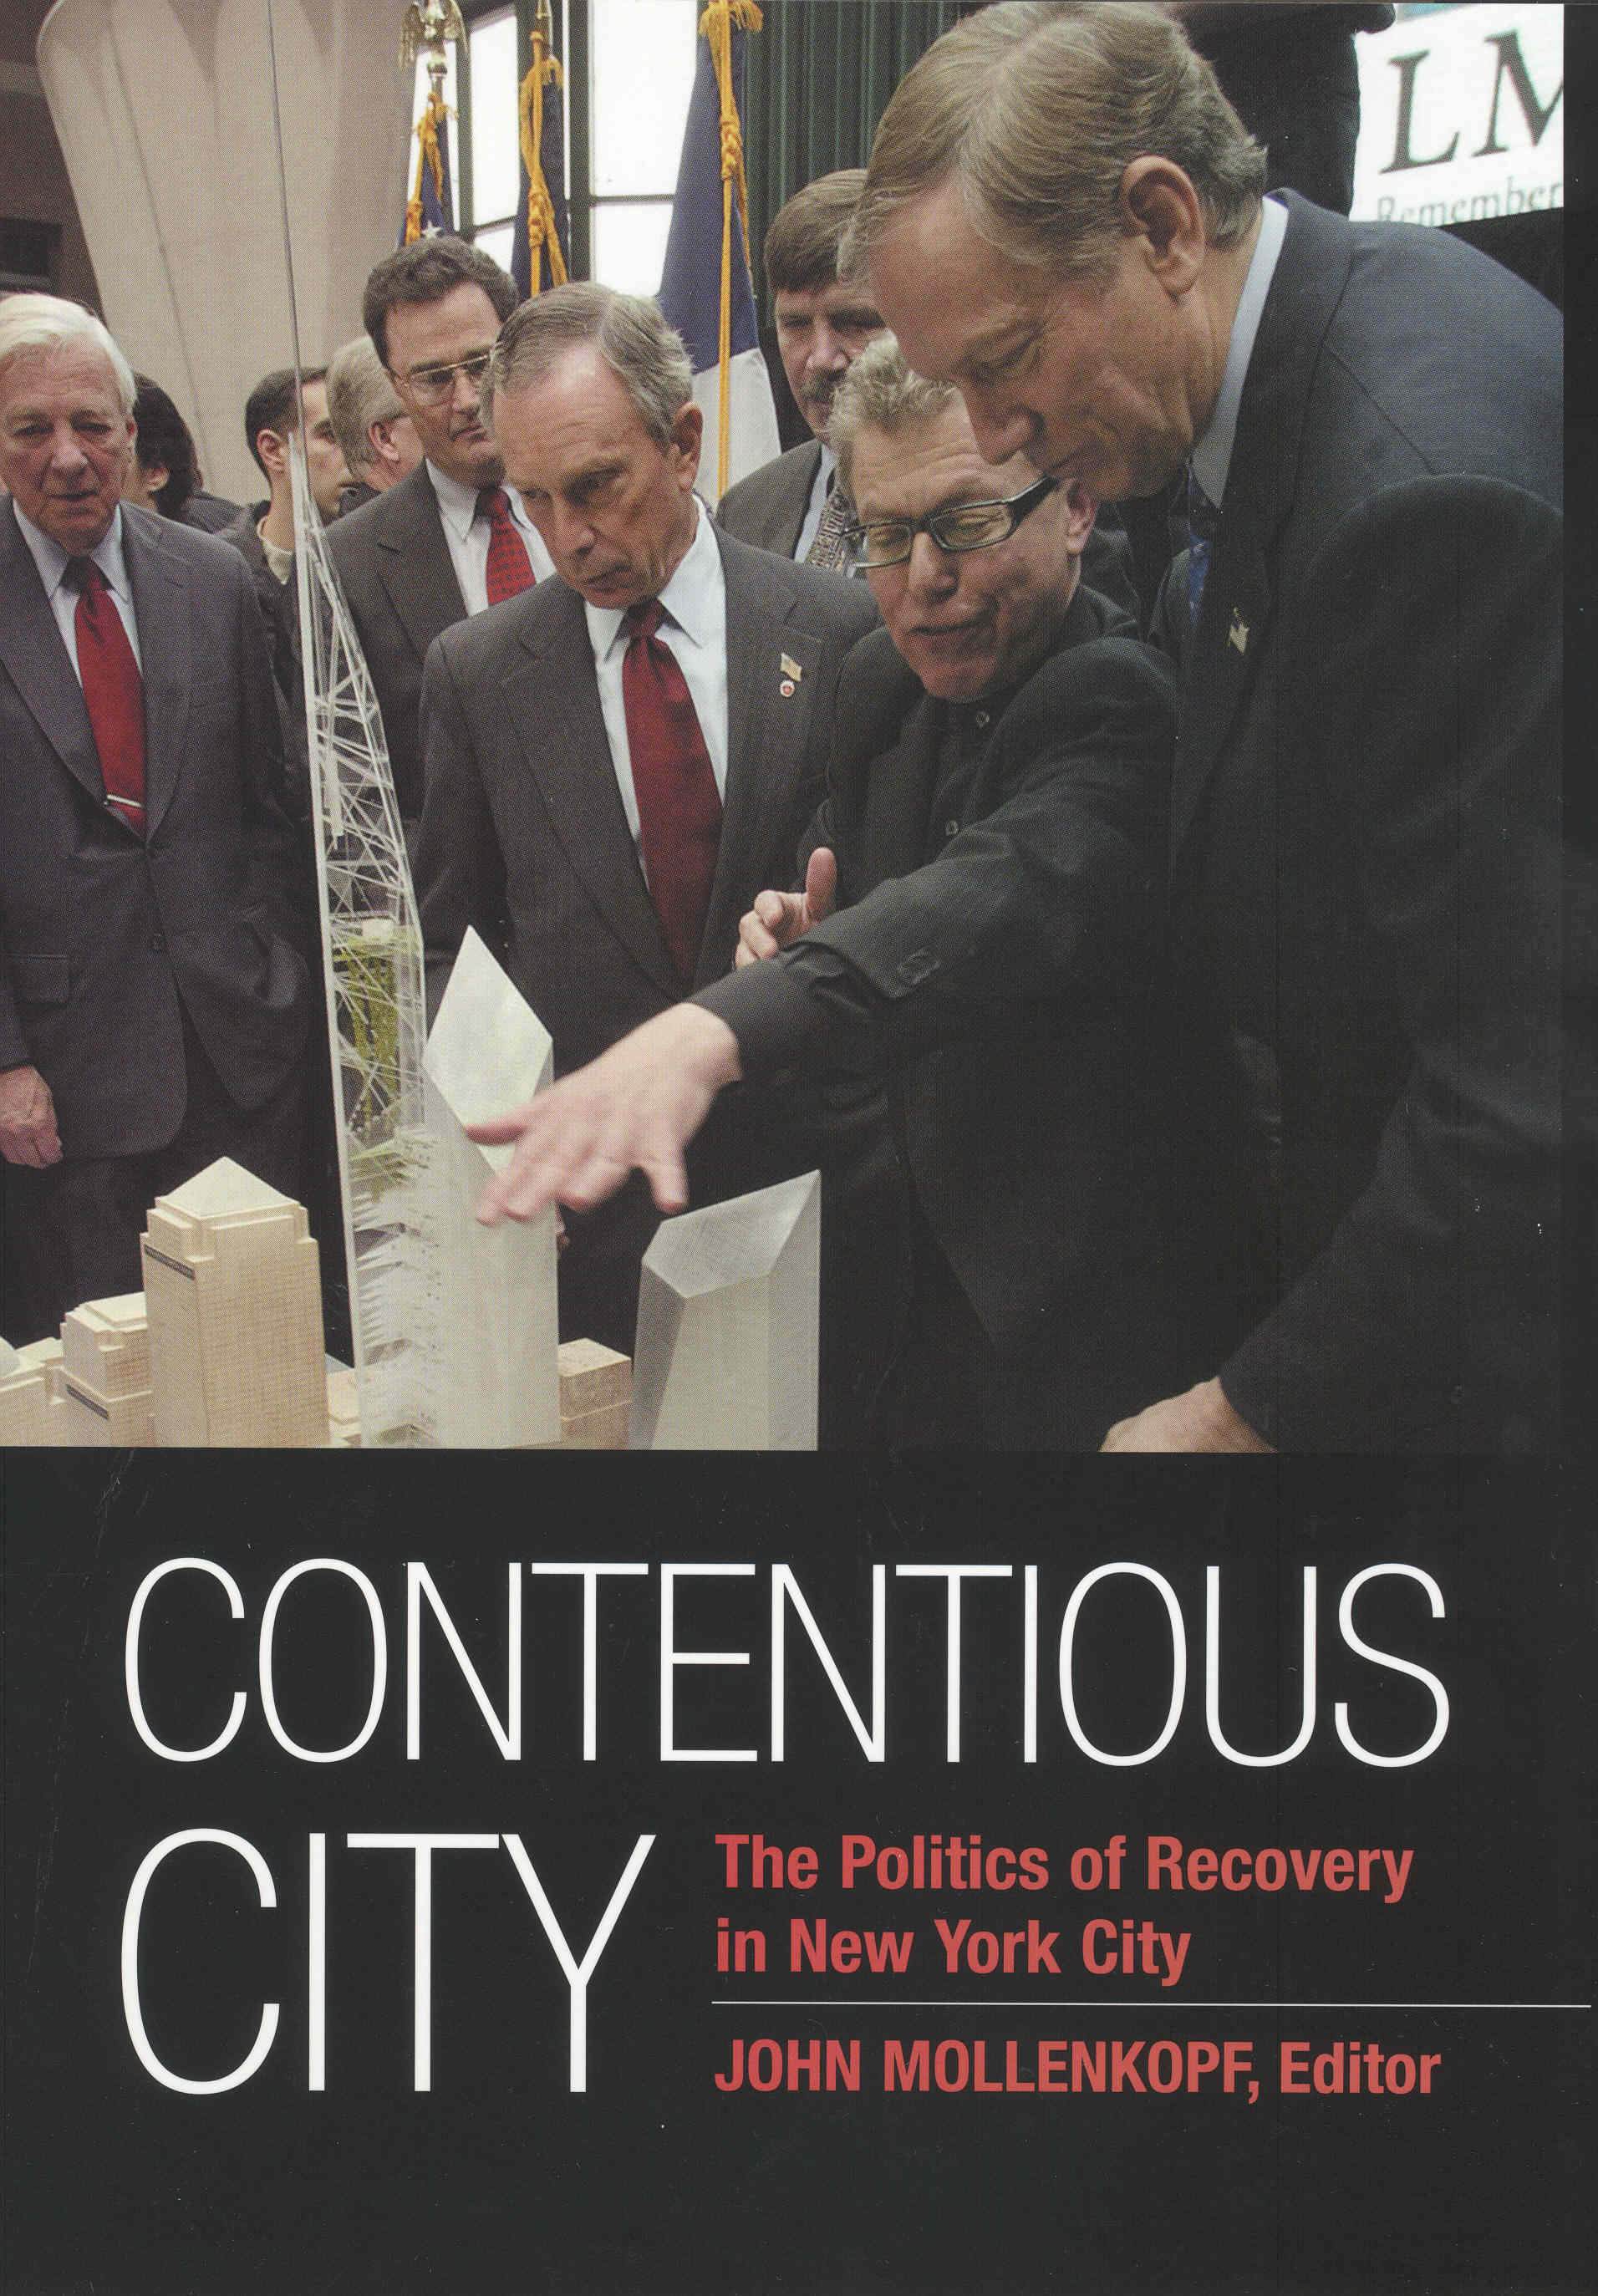 Contentious City